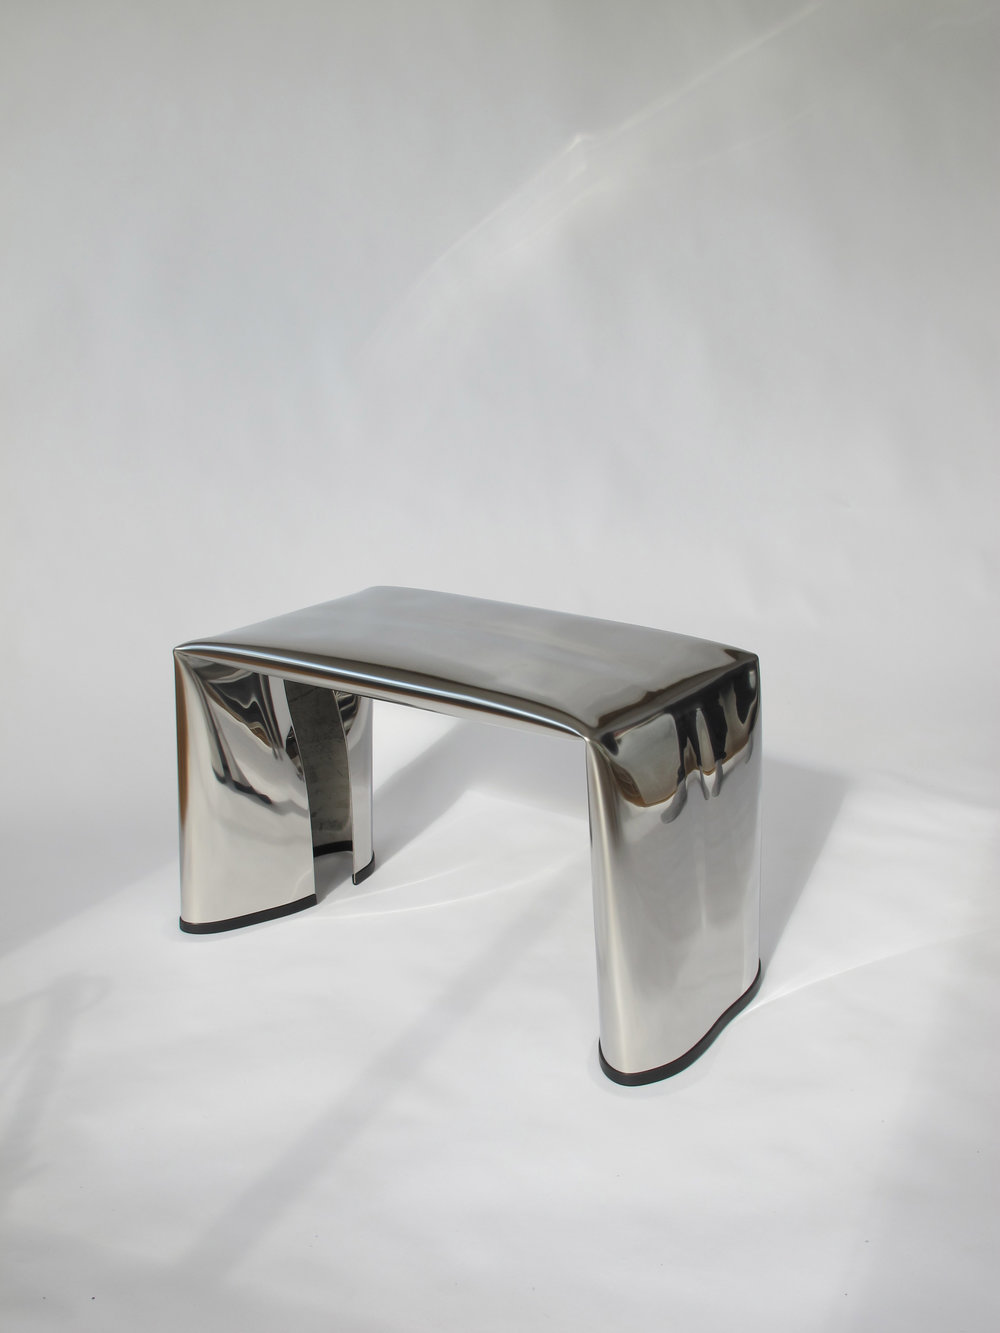 Soft_Baroque_and_David_Horan_Stainless_Steel_Bench_01.jpg